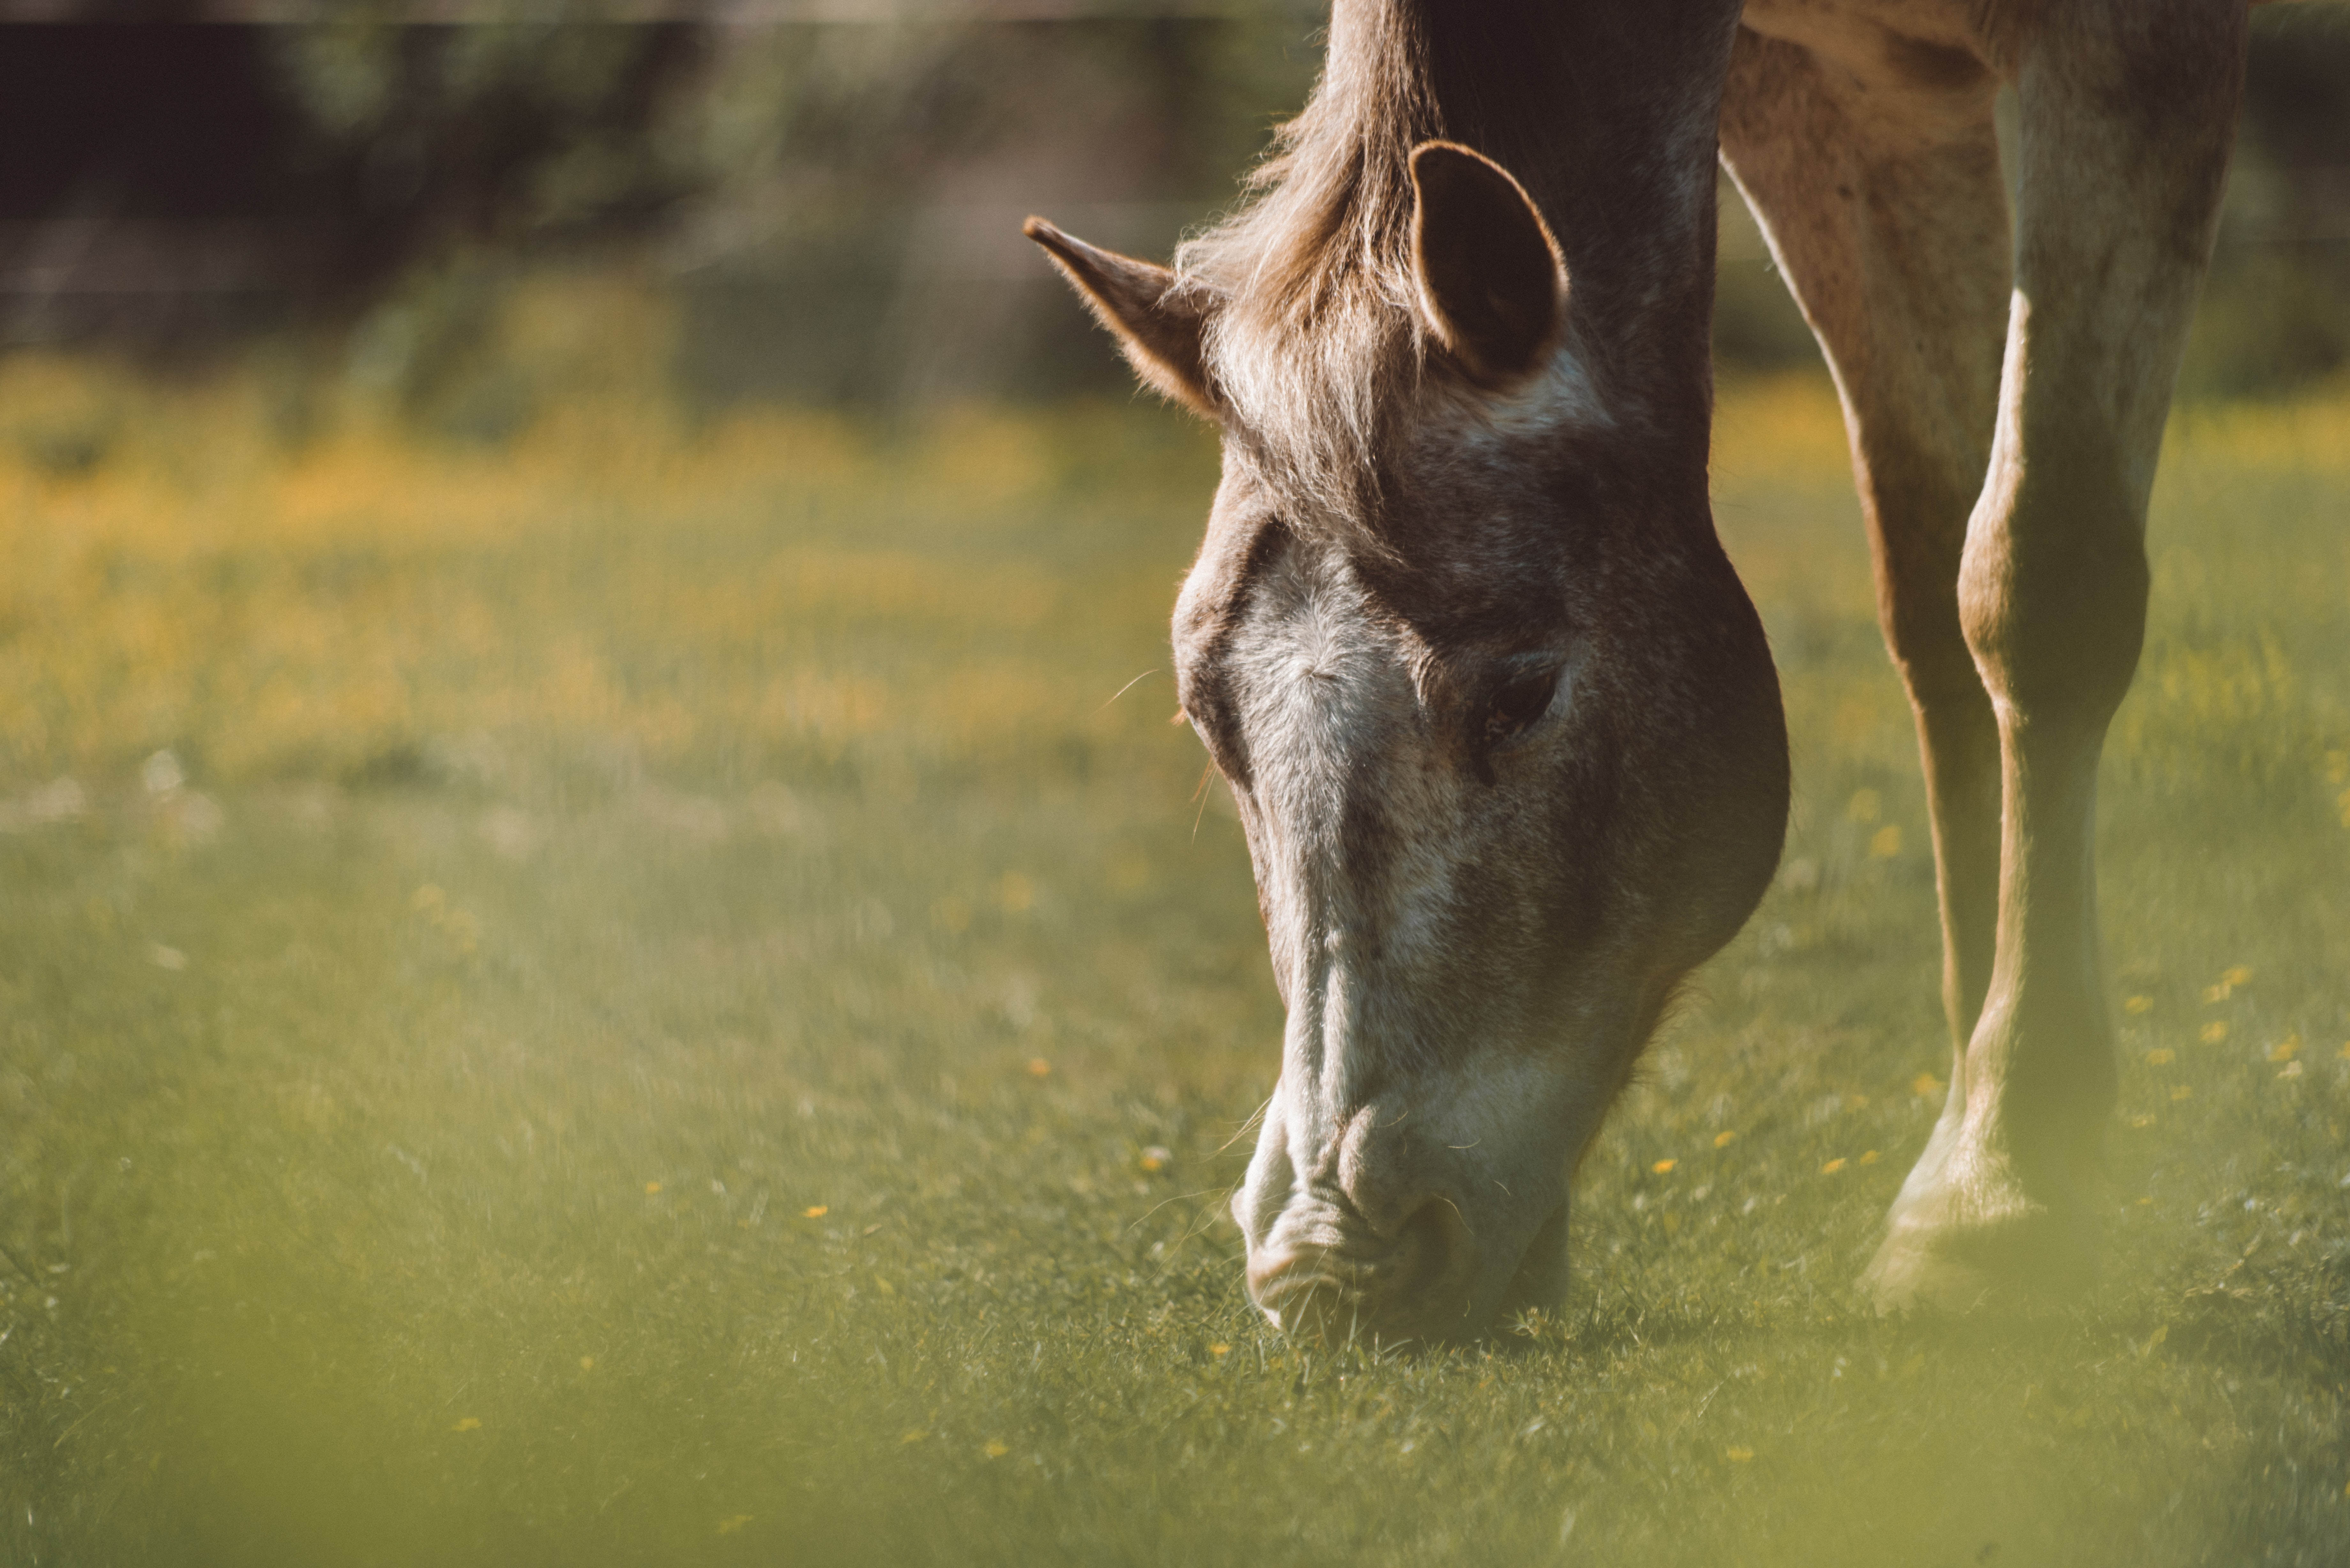 A fuzzy shot of a gray horse grazing on green grass with specks of yellow flowers